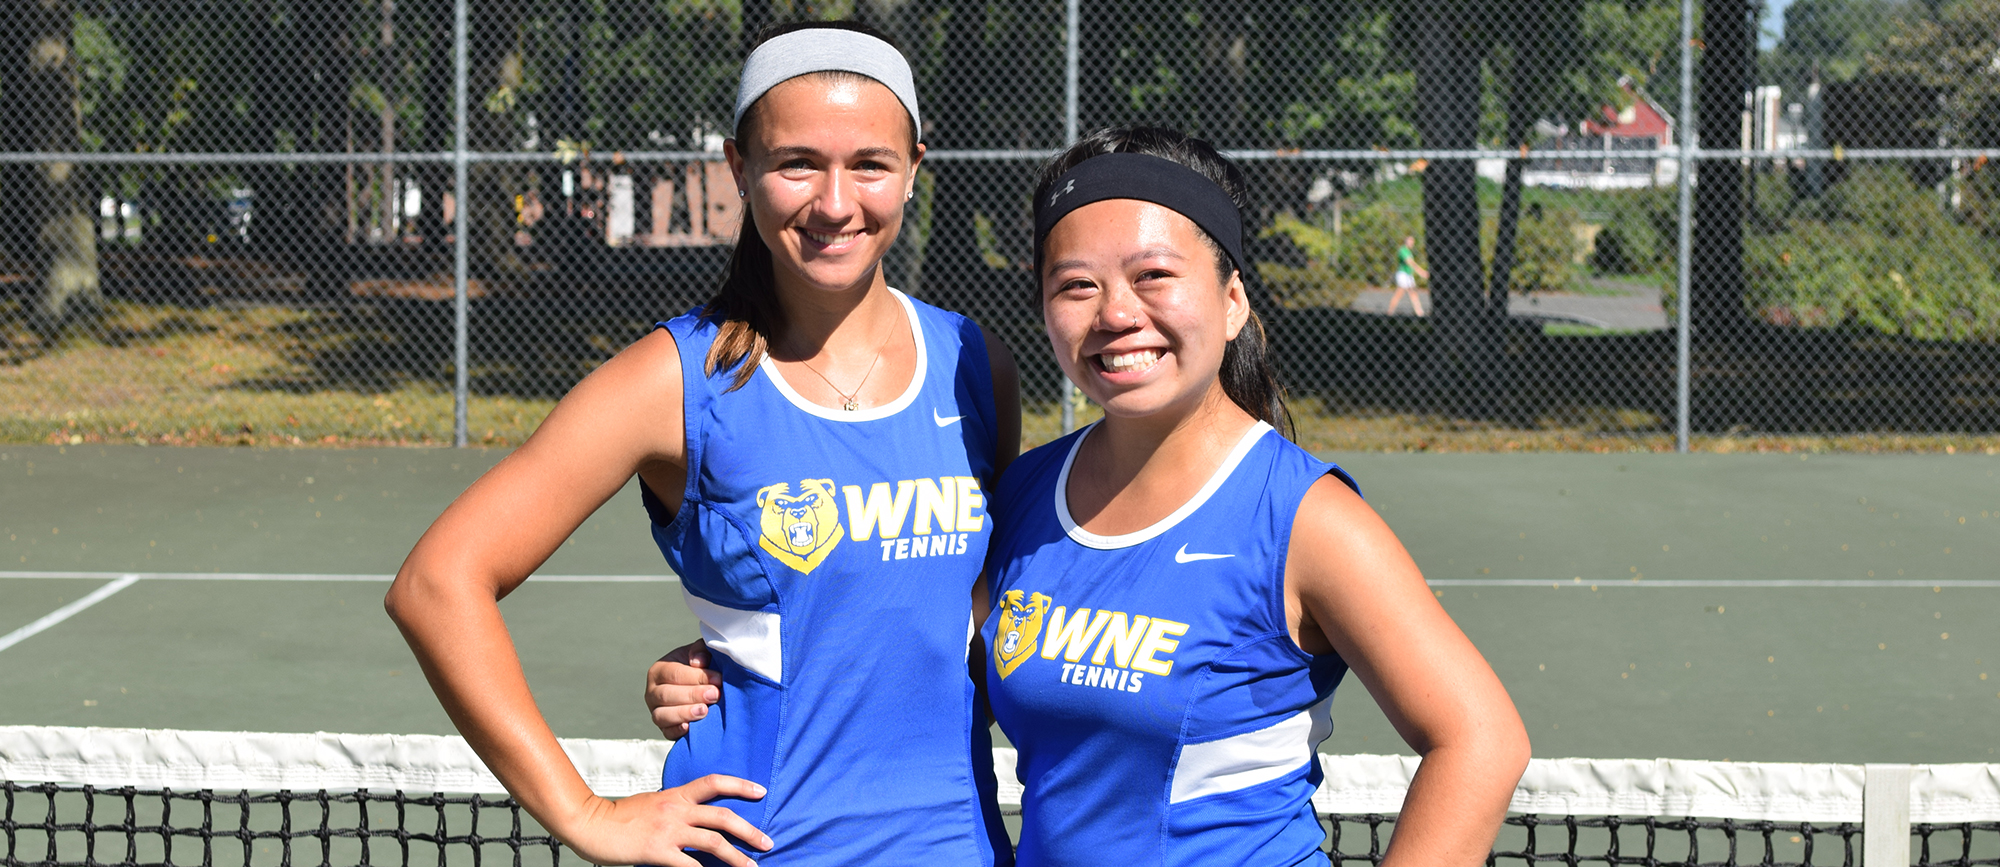 Seniors Christina D'Agostino (left) and Kim Phu (right) were honored prior to the start of Sunday's match, which the Golden Bears won 9-0.